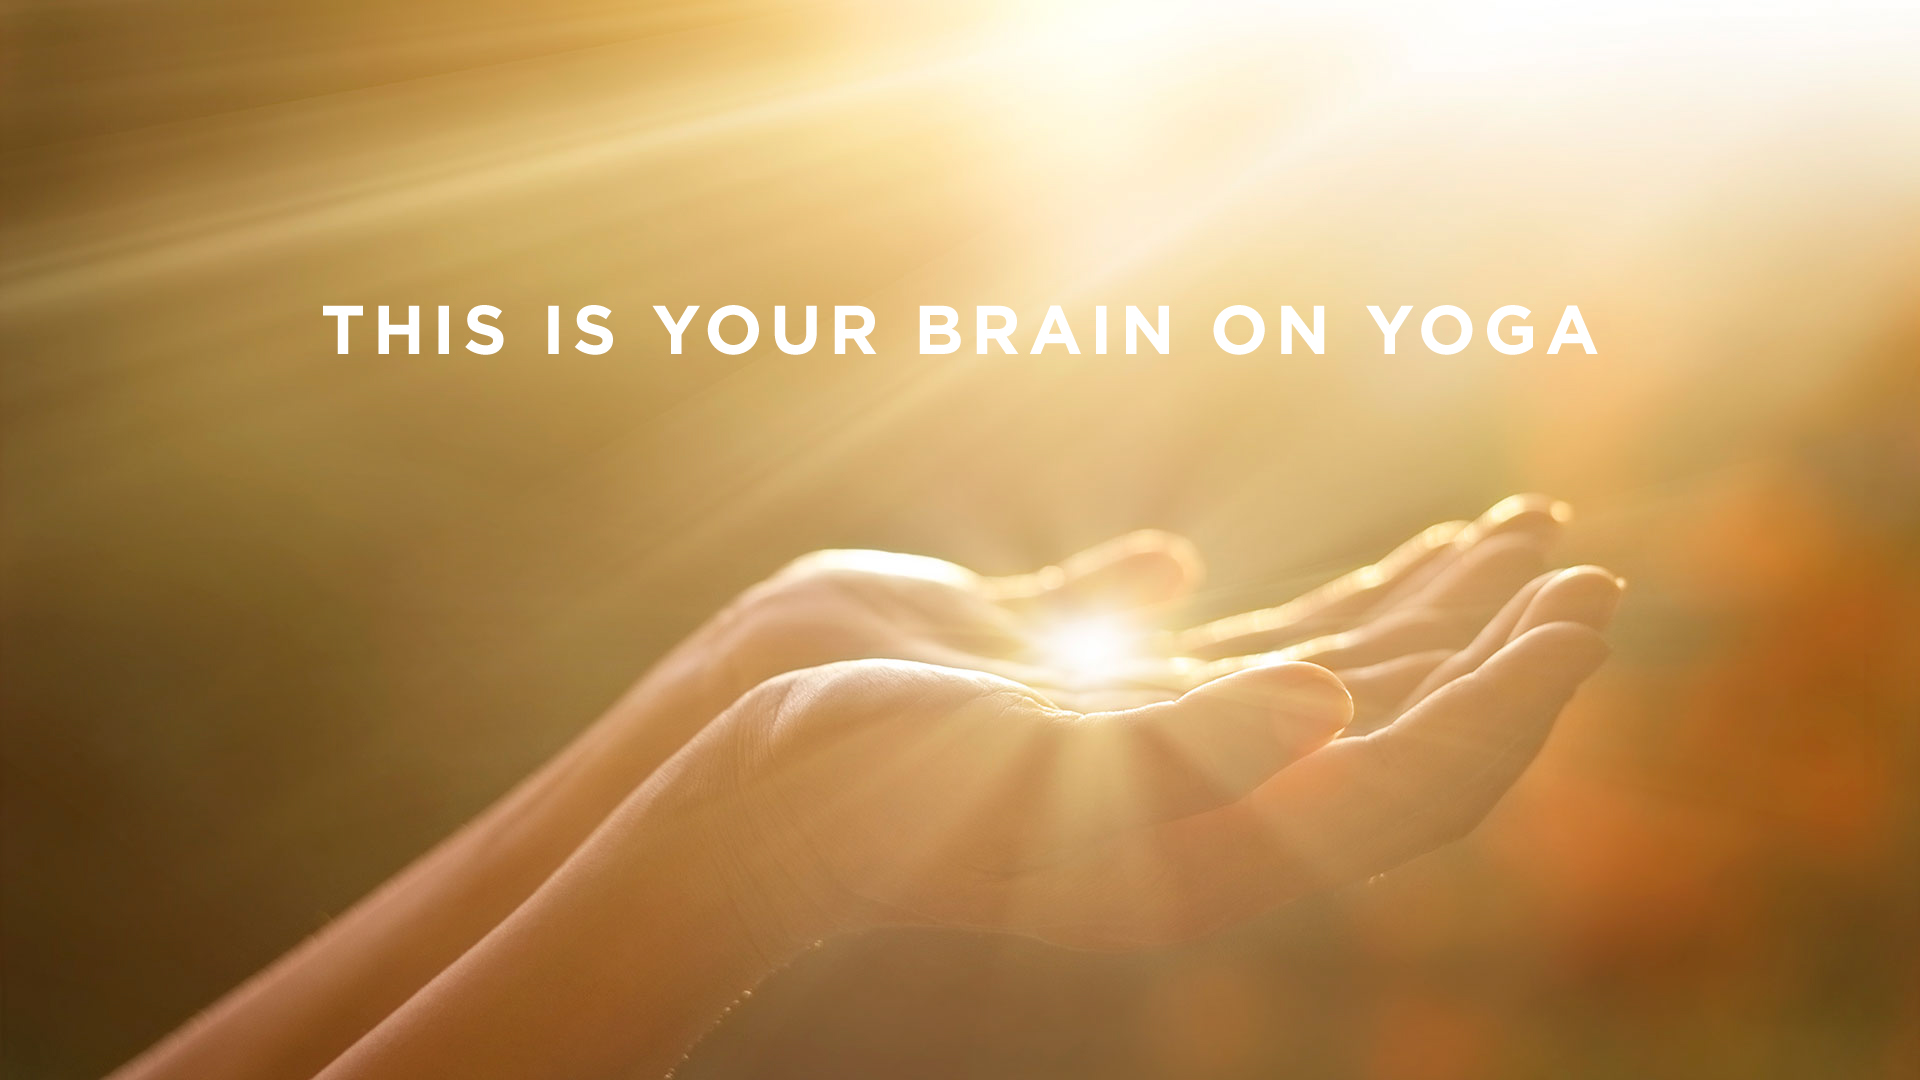 This is Your Brain on Yoga